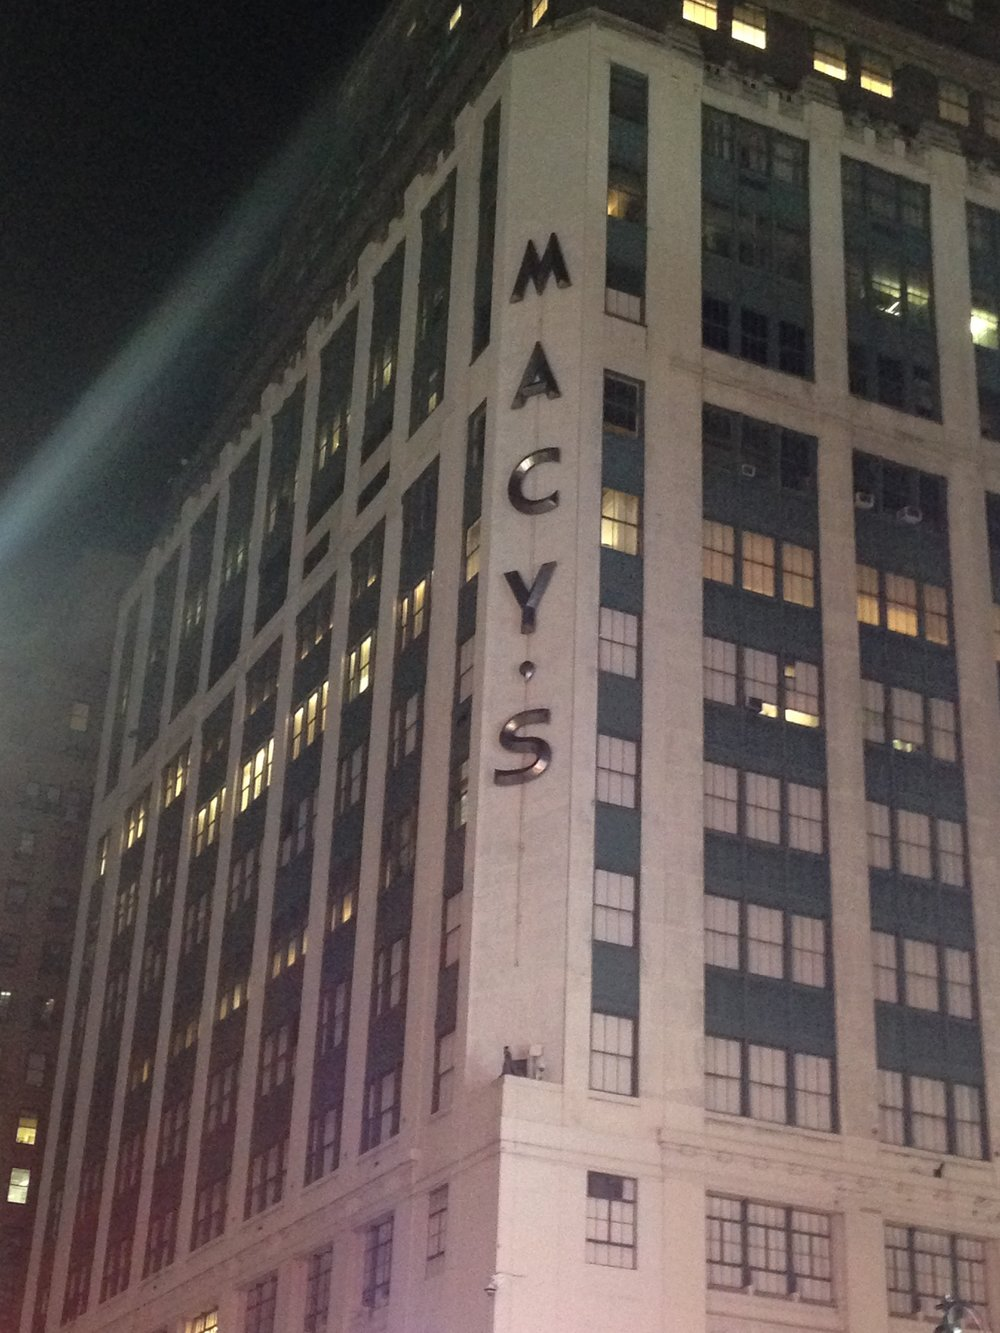 ^ Macys by night